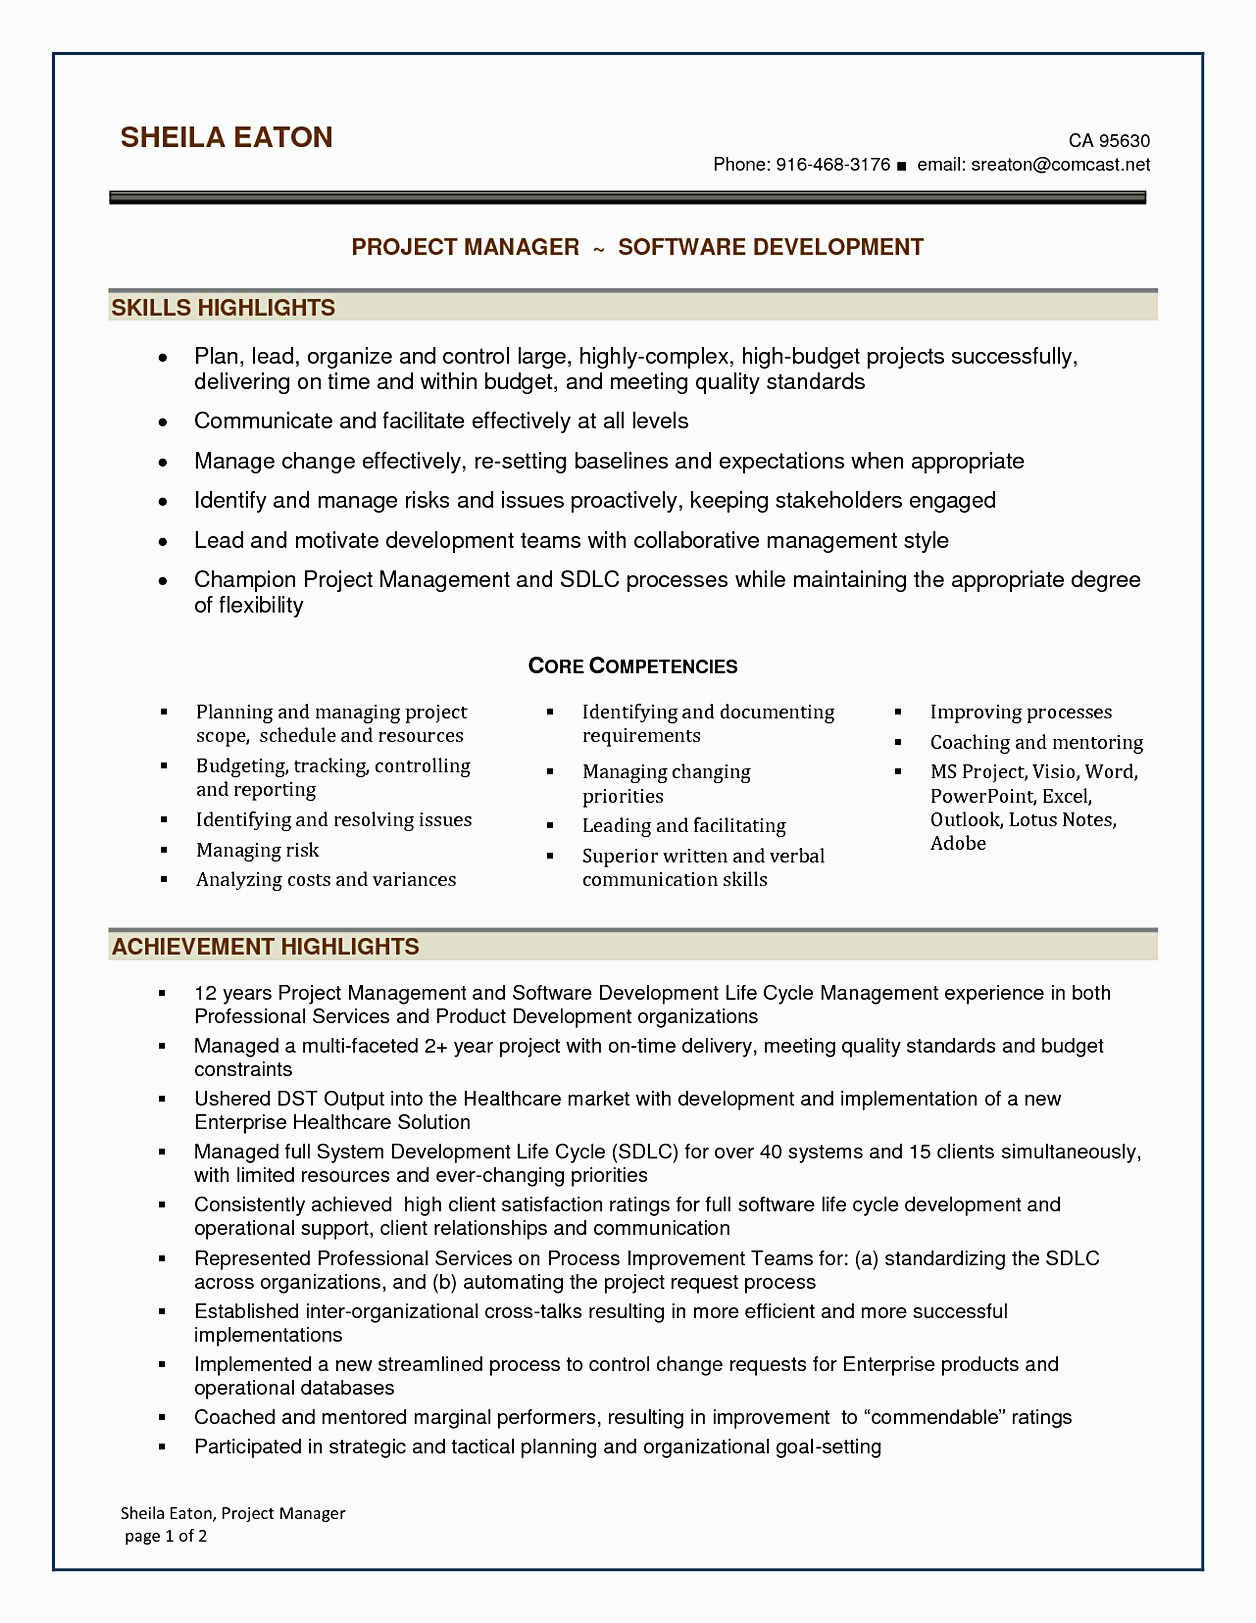 Software Development Project Manager Resume Sample software Project Manager Resume